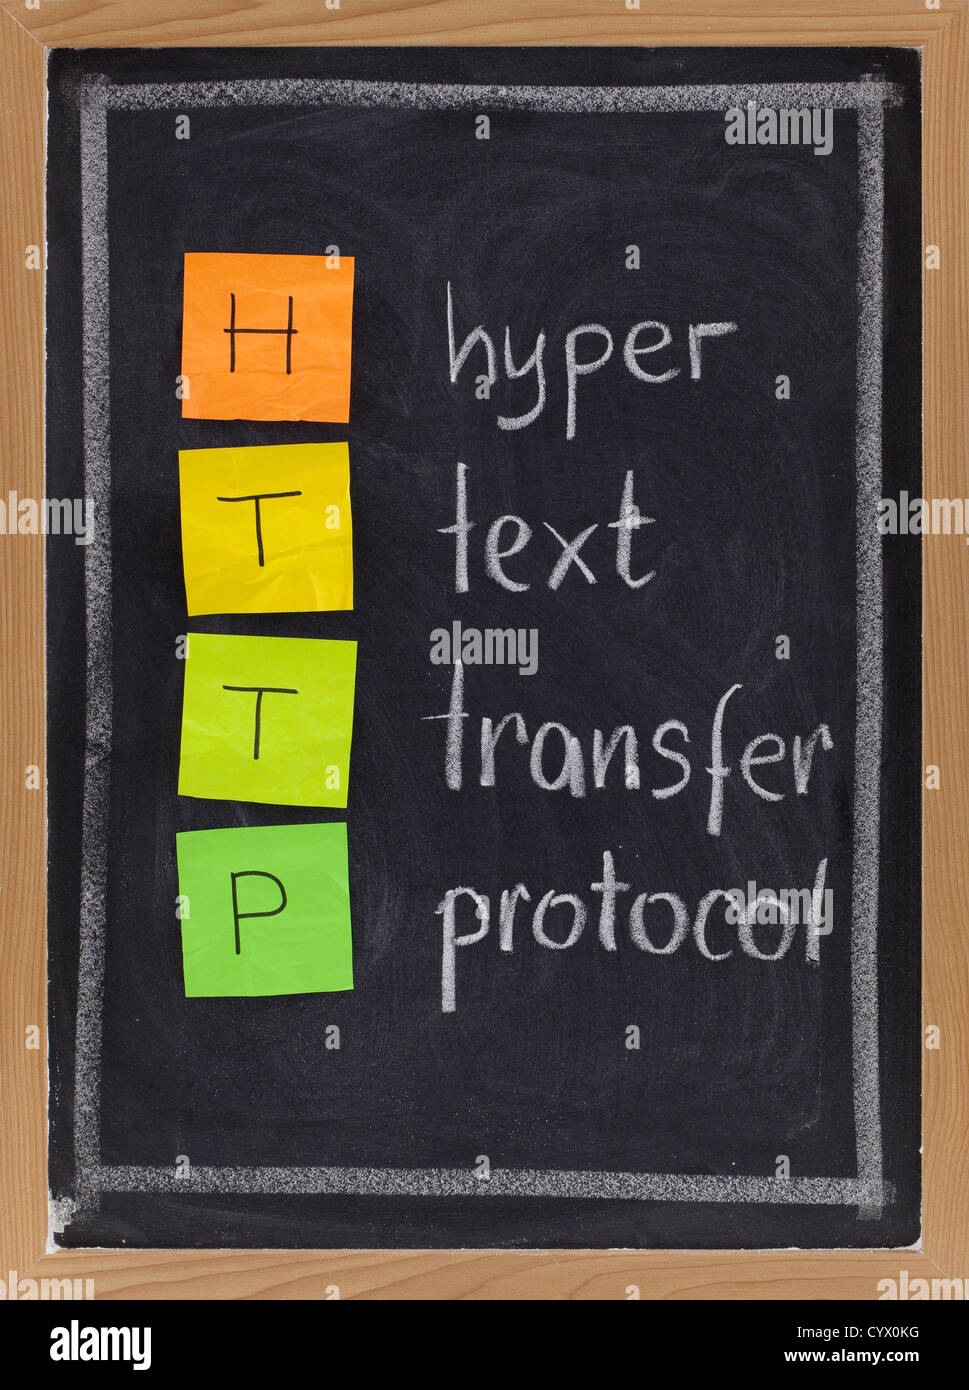 http (hyper text transfer protocol) acronym explained on blackboard, color sticky notes and white chalk handwriting - Stock Image